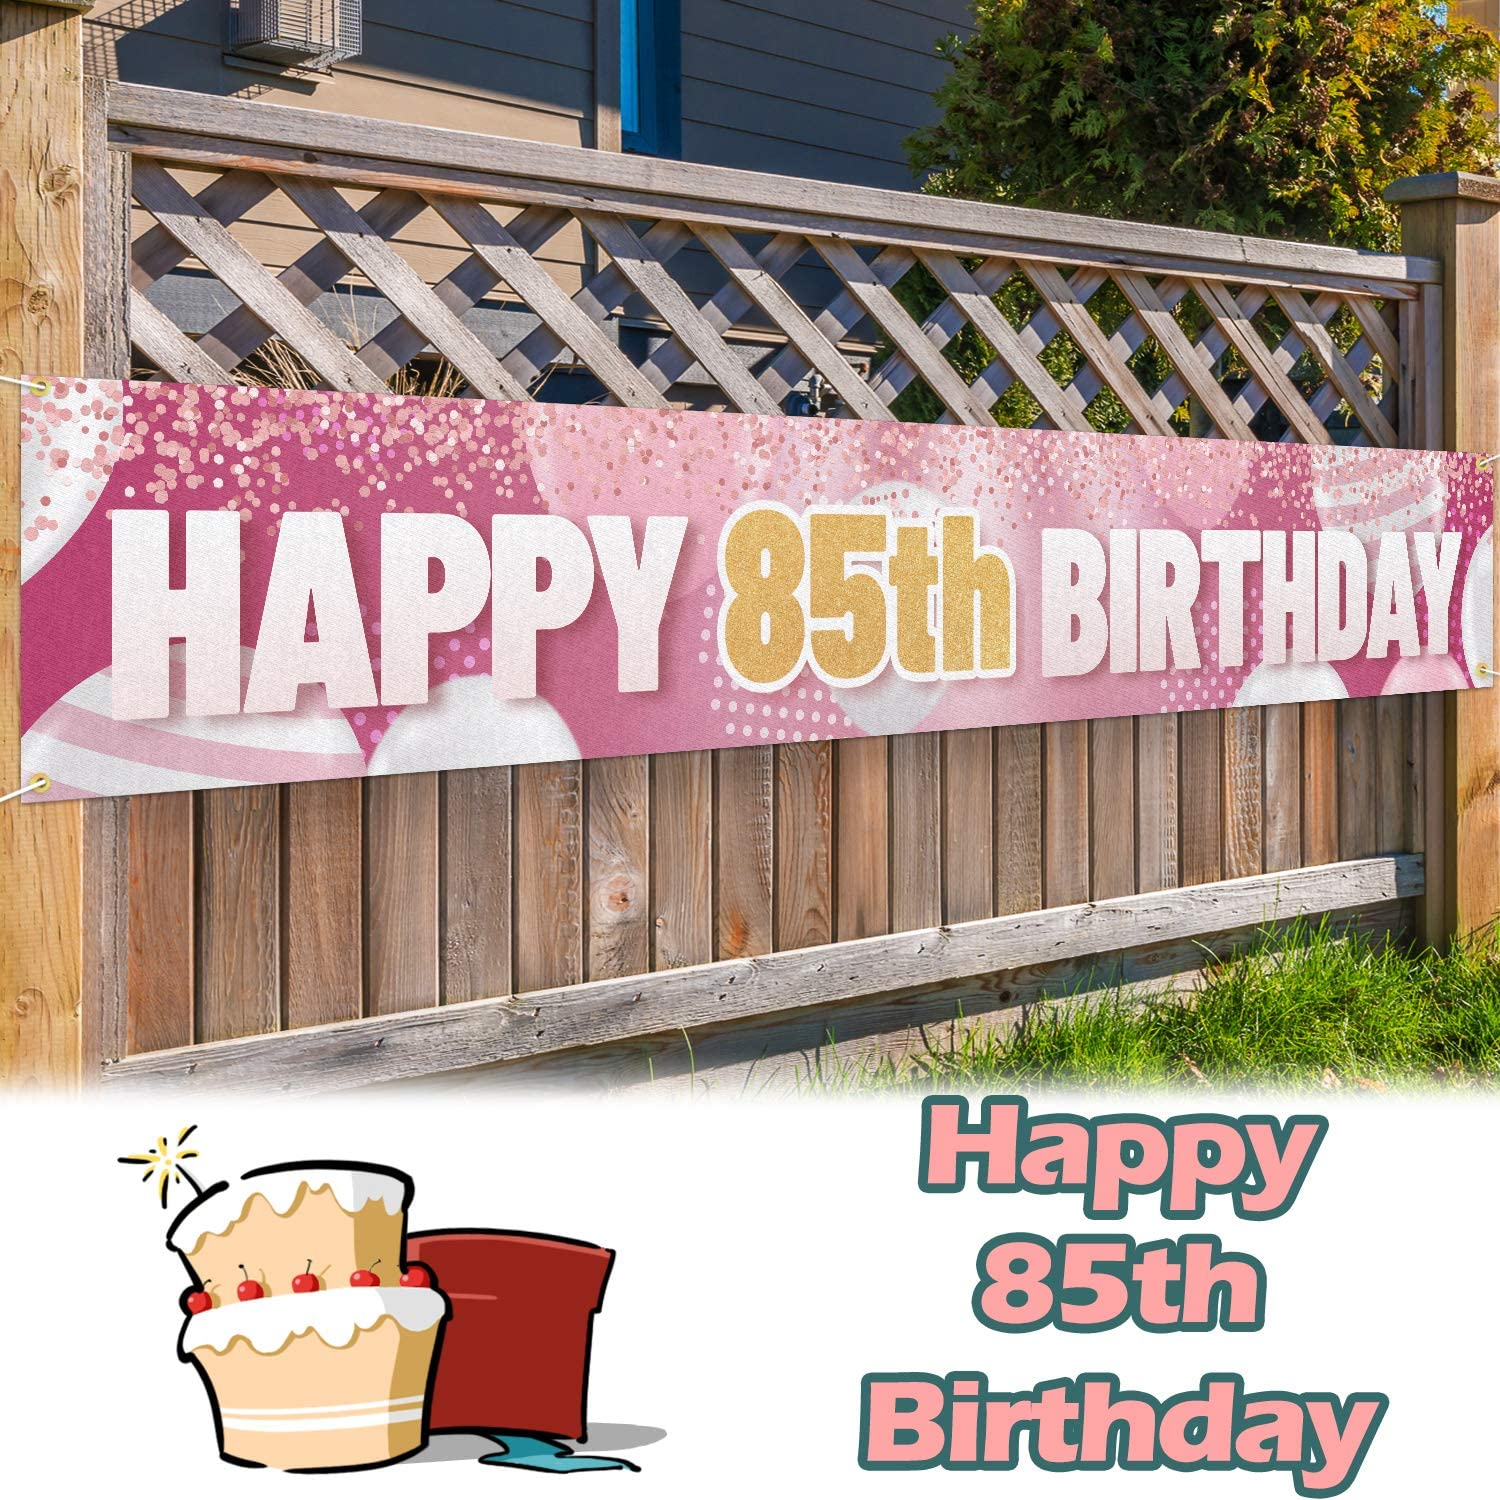 Large 85th Birthday Party Banner 9.8 x 1.6ft 85th Birthday Party Supplies Decorations for Both Outdoor Indoor Gold